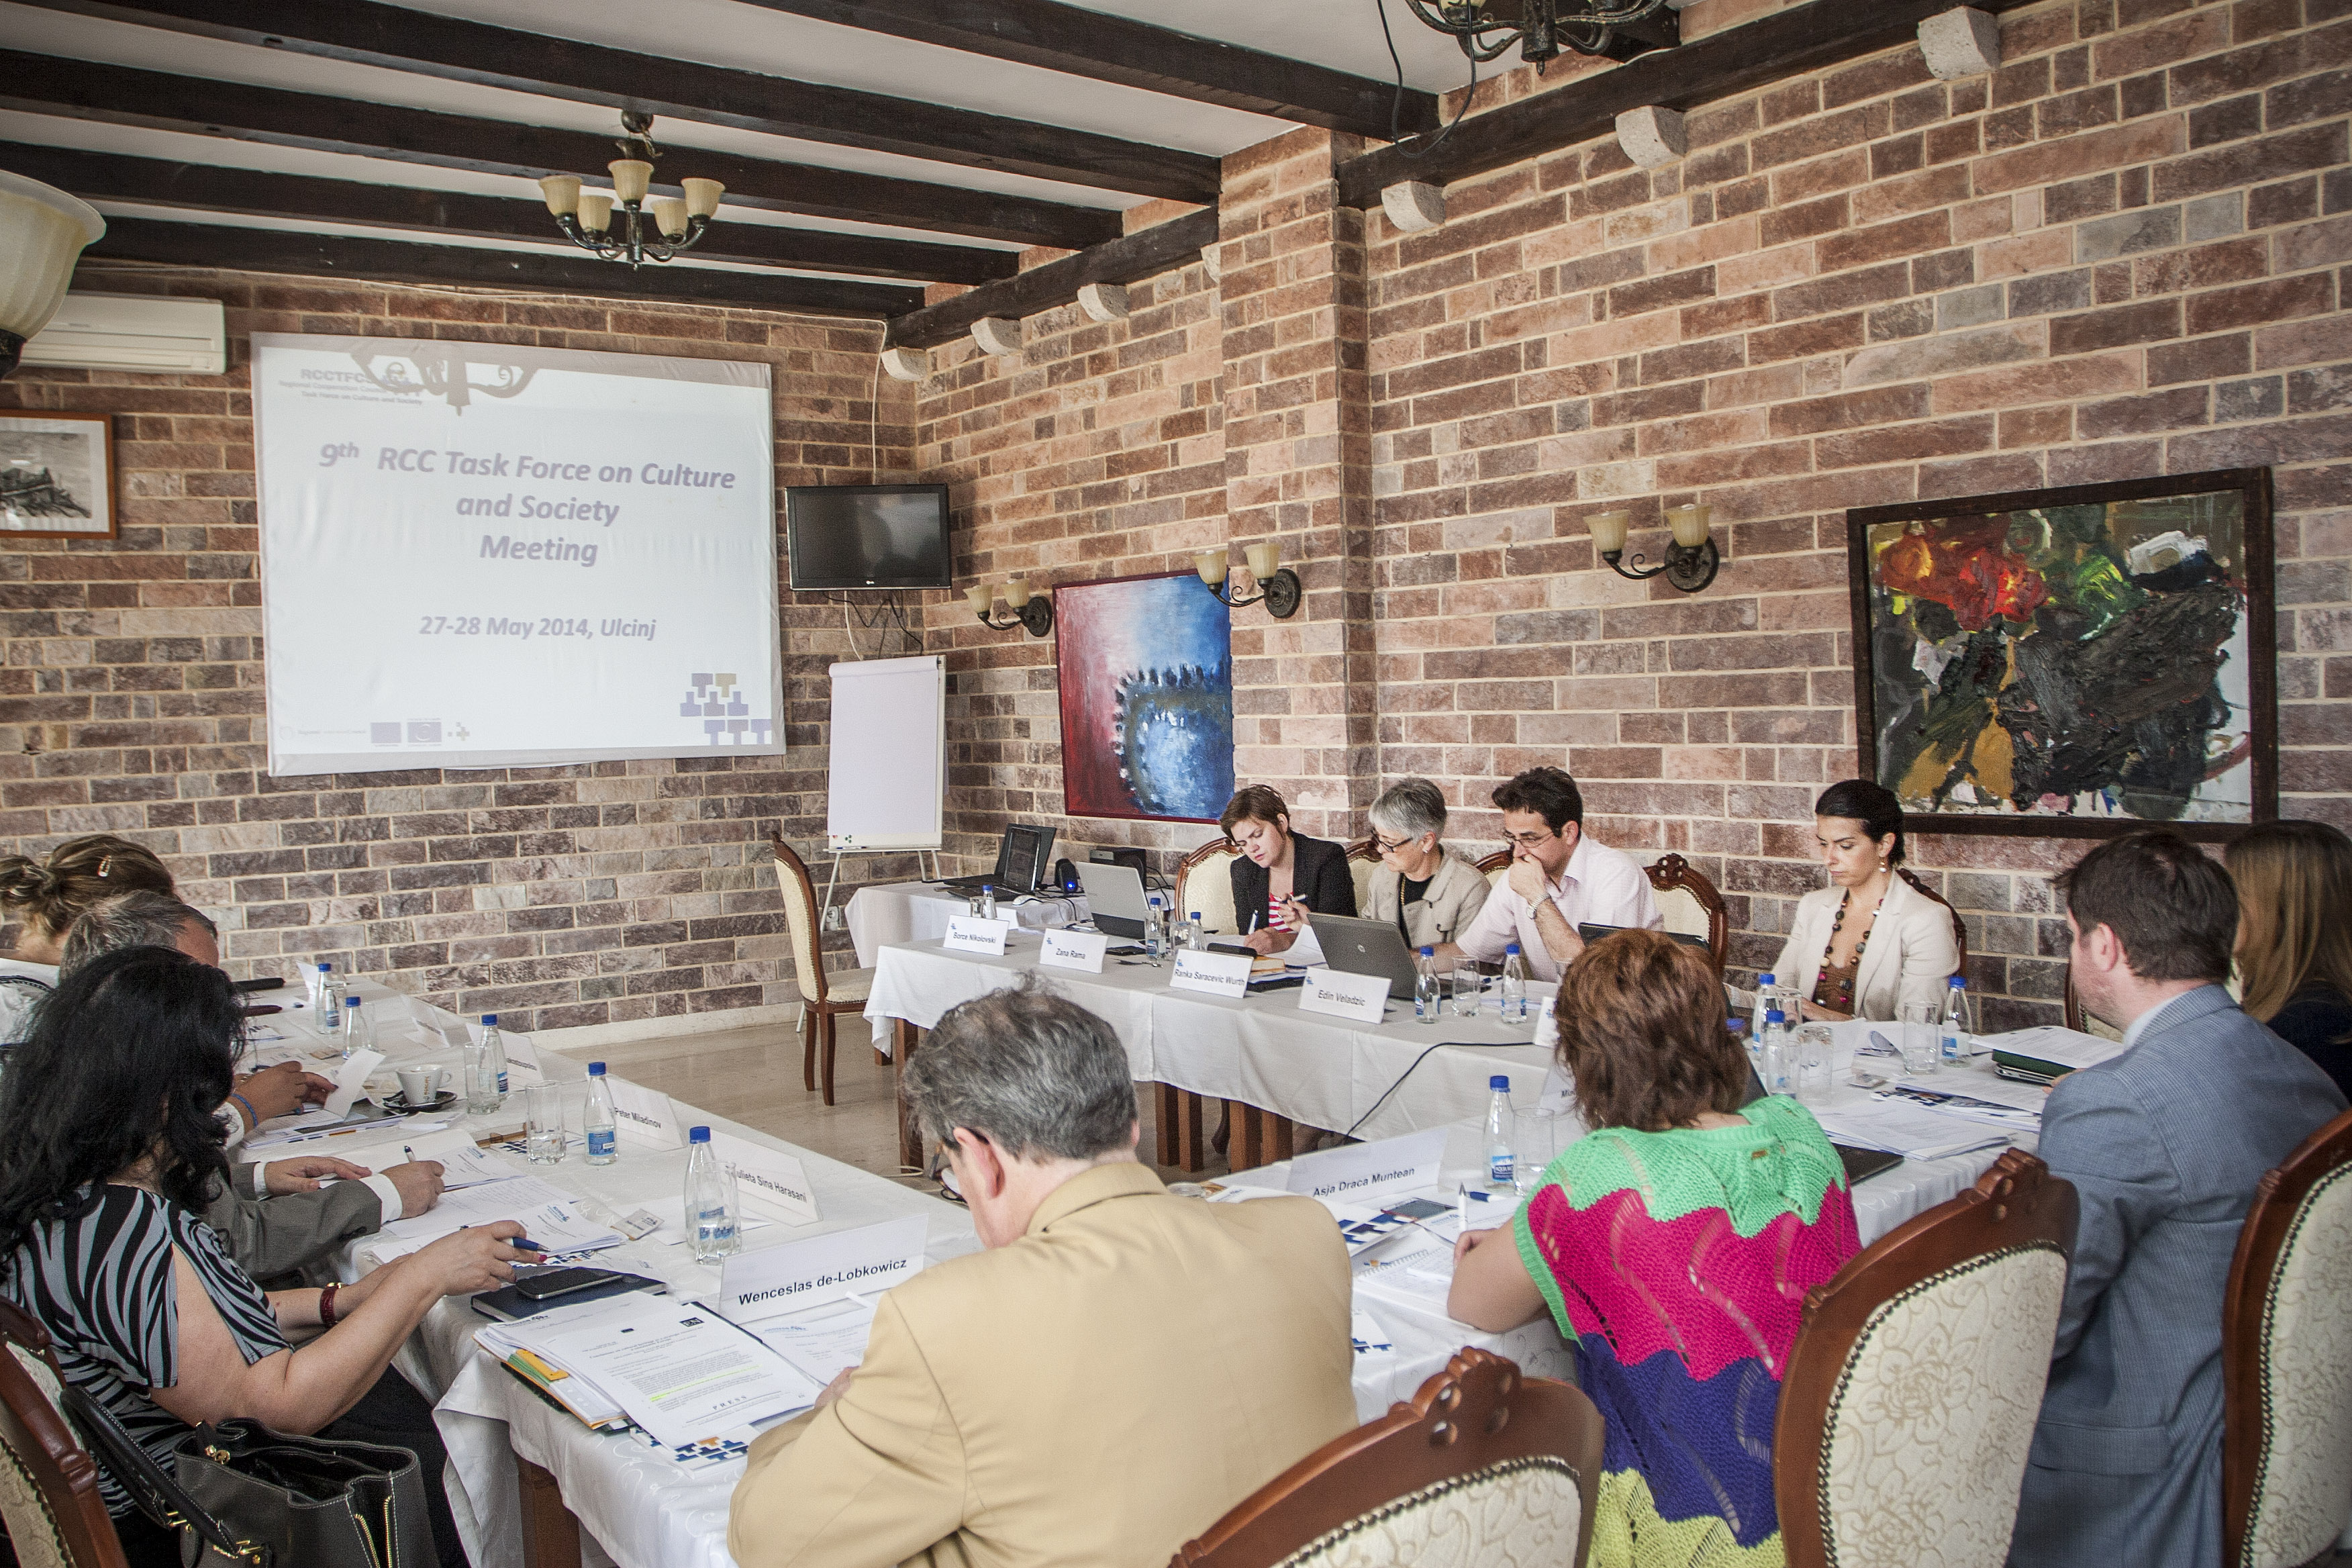 The ninth meeting of the RCC Task Force on Culture and Society was held on 28 May 2014 in Ulcinj, Montenegro. (Photo RCC/Milena Filipovic)